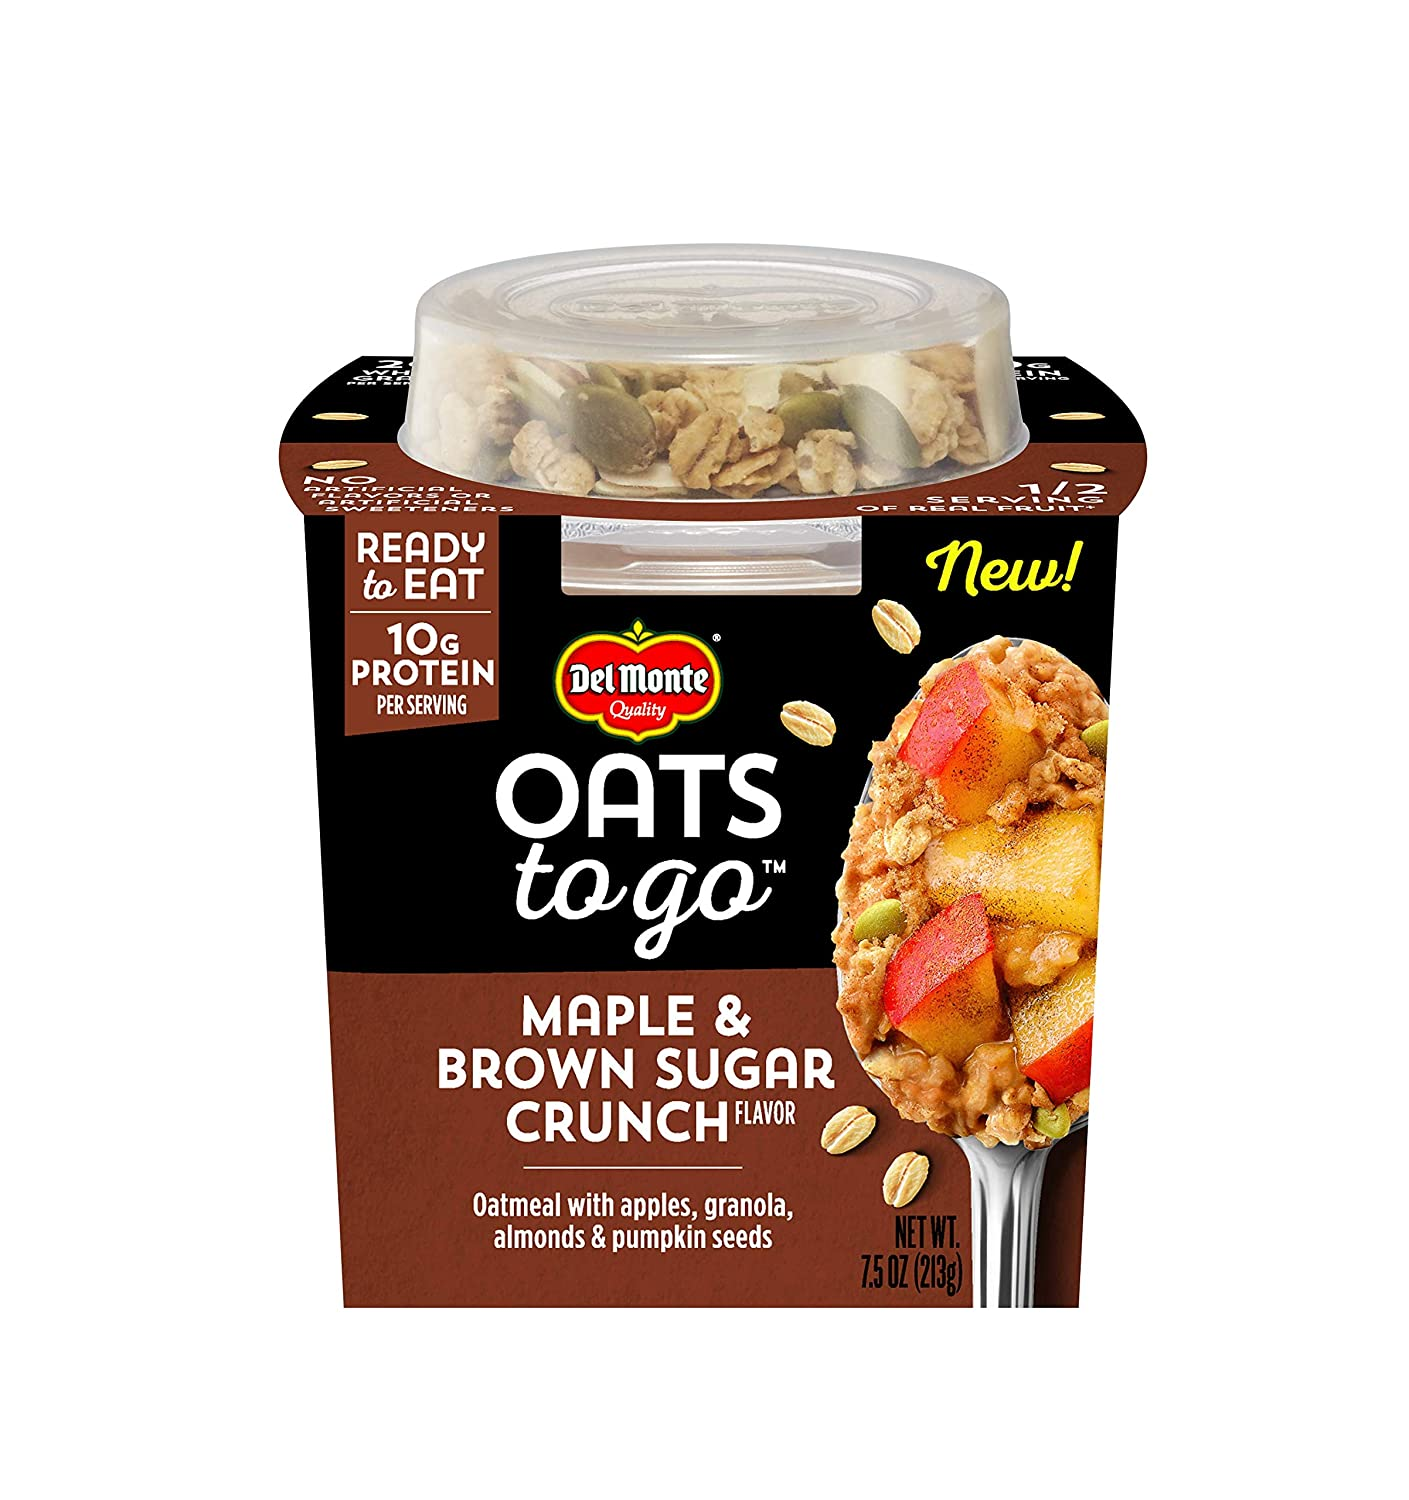 package of Oats to Go in Maple Brown Sugar Crunch